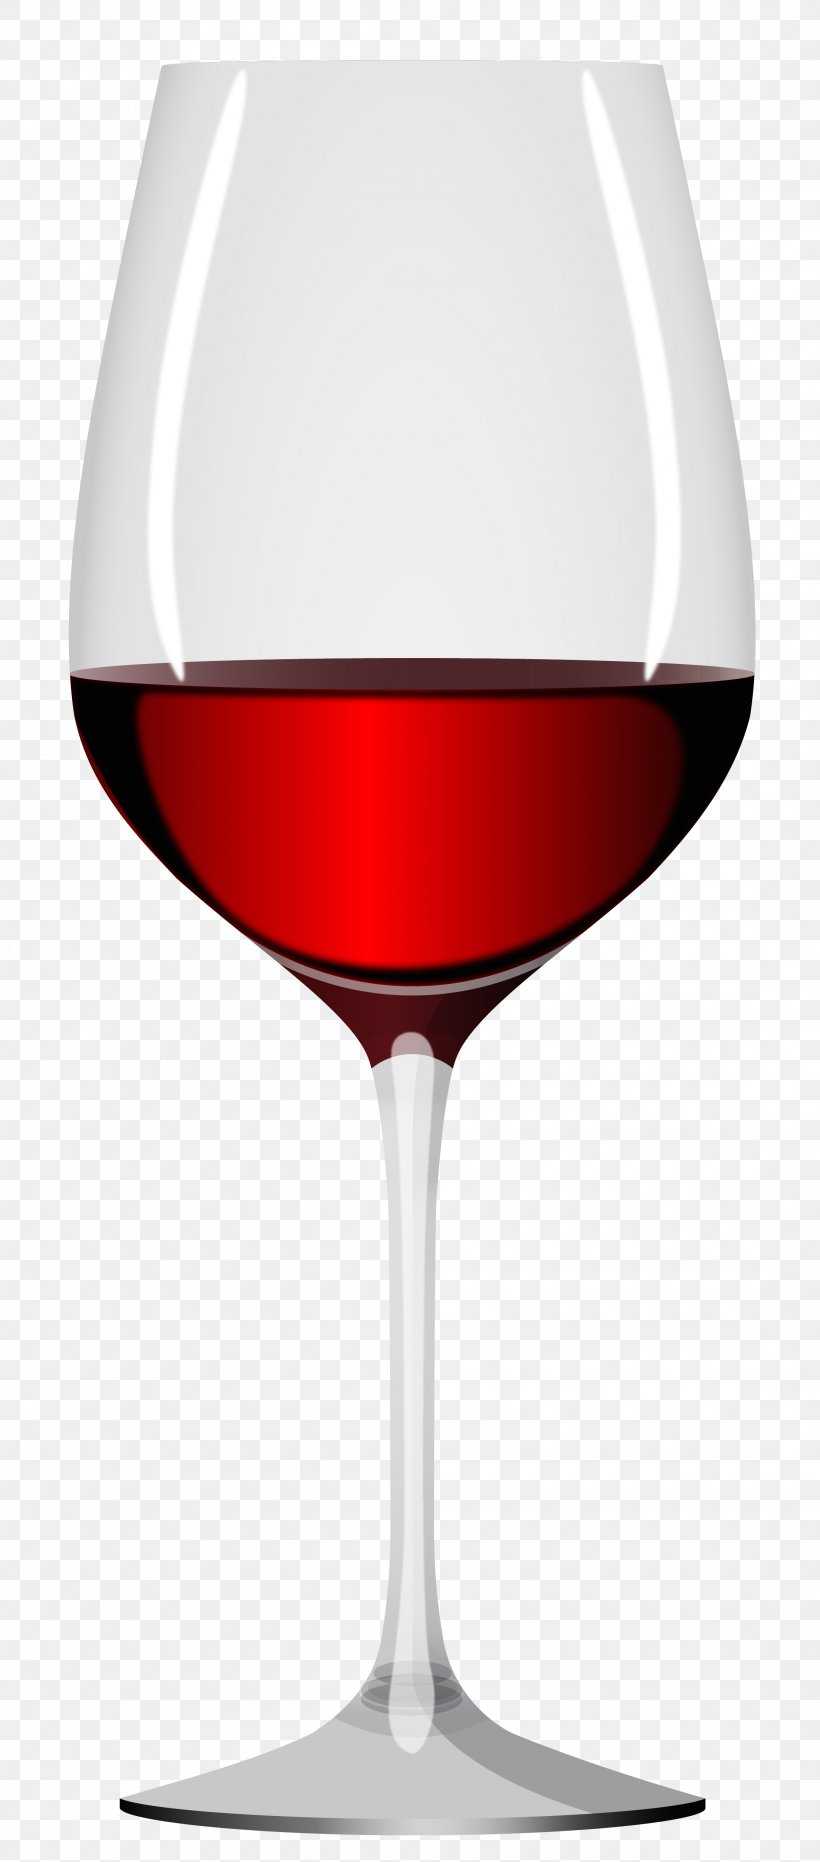 Red Wine Champagne Wine Glass Clip Art, PNG, 2210x5020px.